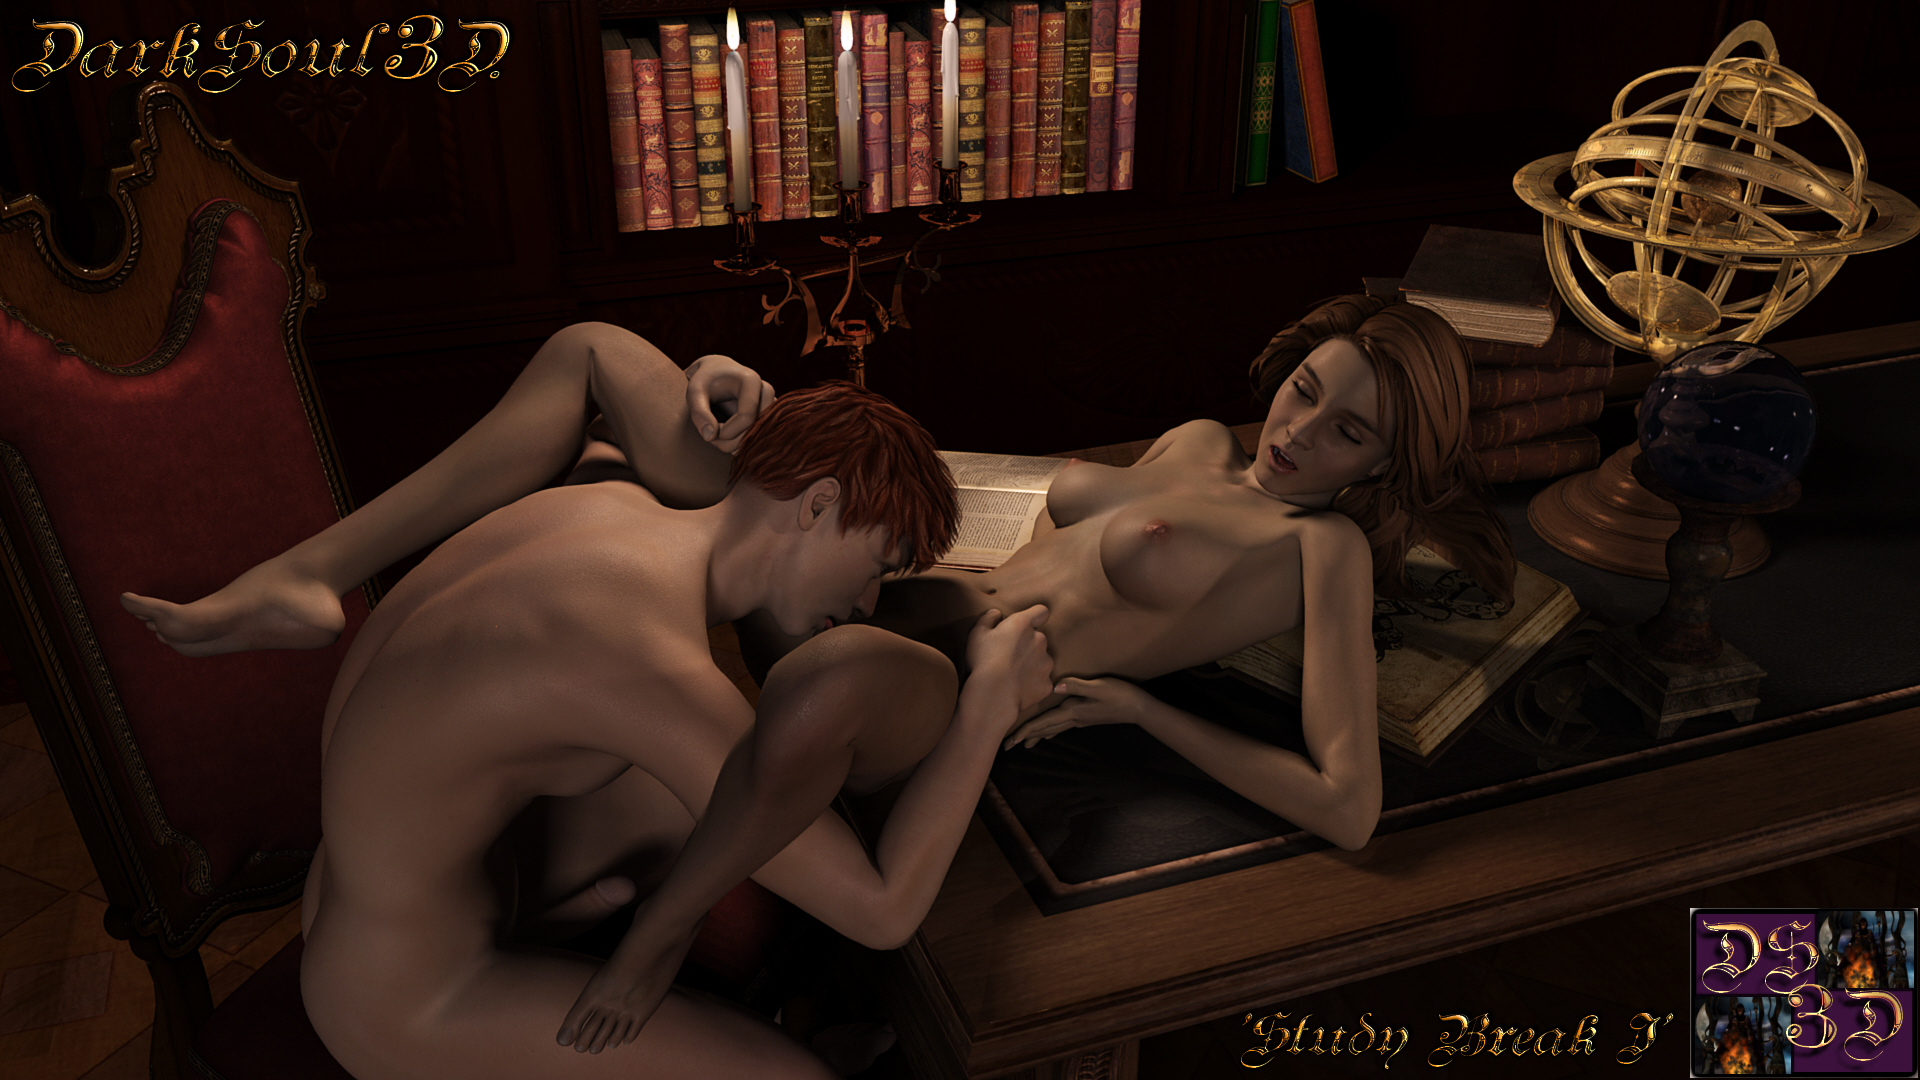 Harry potter sex xxx poto 3d adult pictures